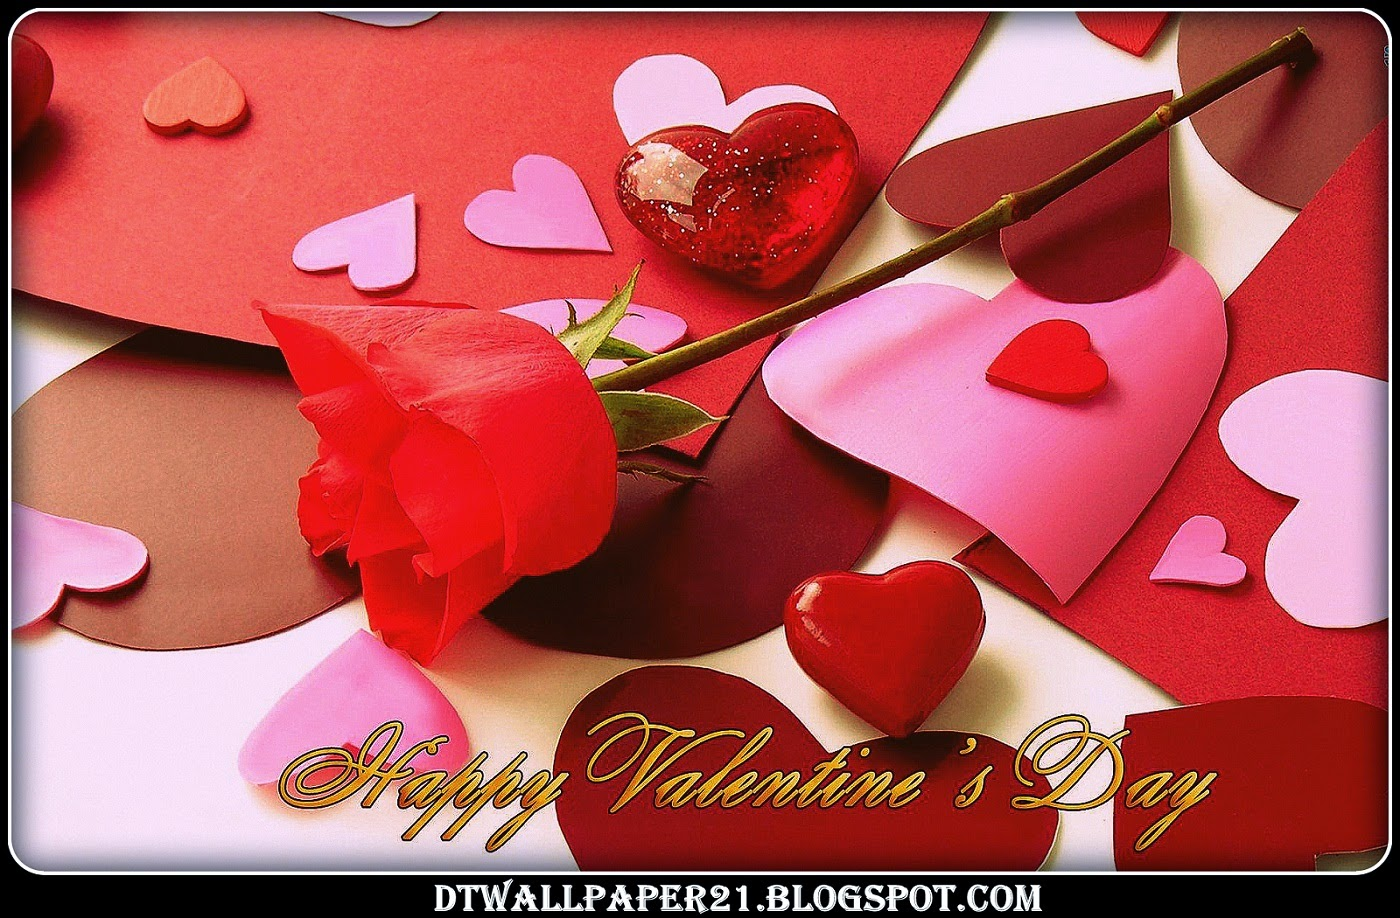 happy valentines day images, quotes wallpaper, special valentines day ideas, valentine cards, valentines day cards, valentines day gift ideas, valentines day ideas for her,